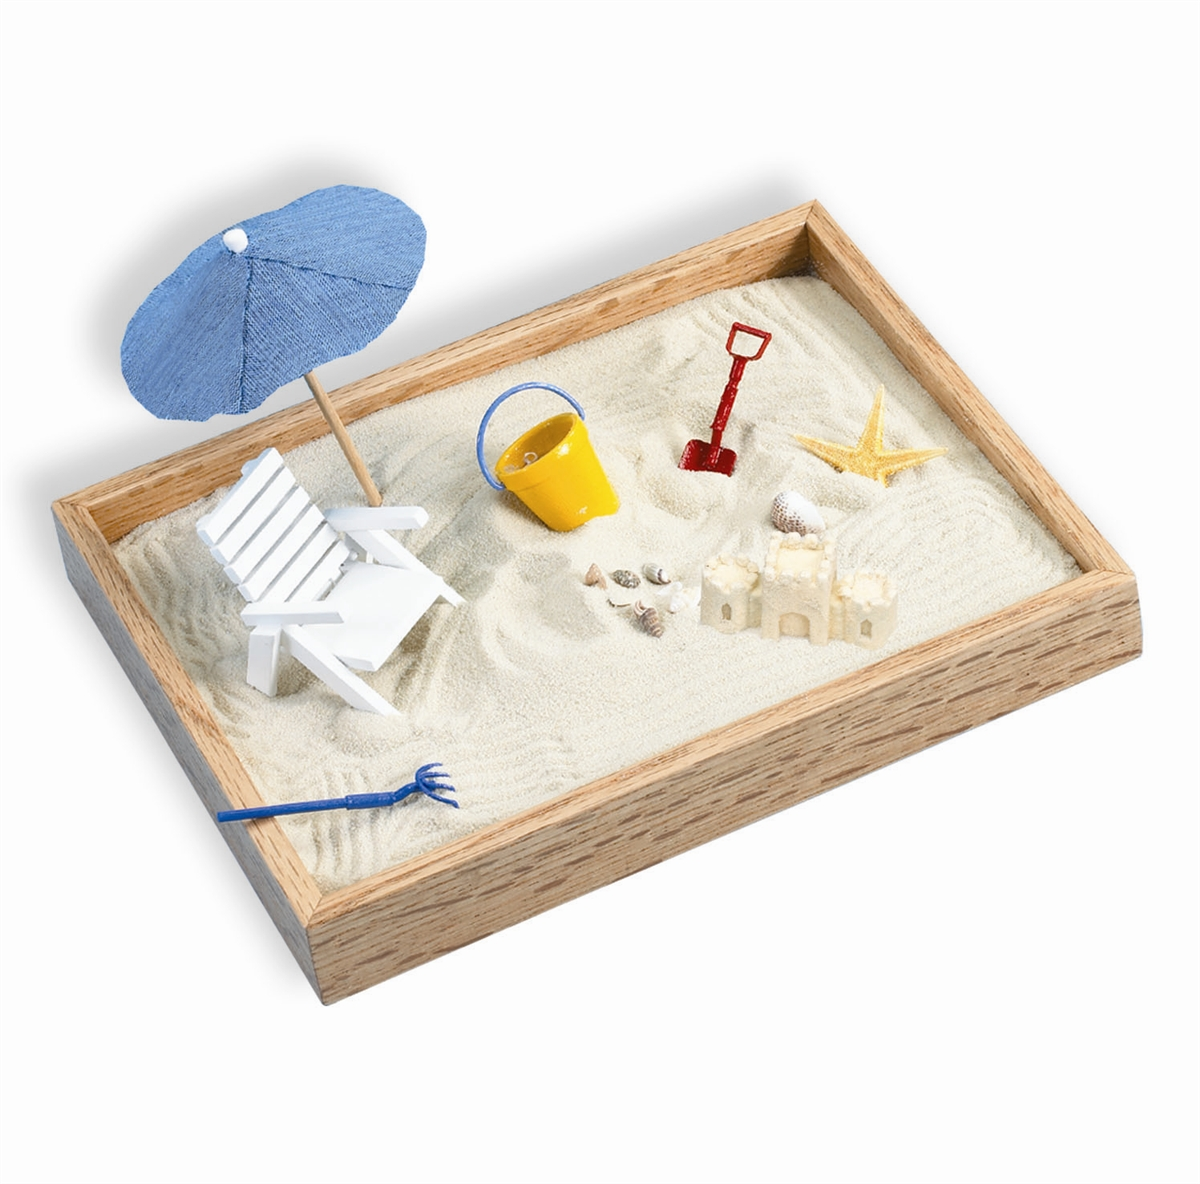 Toys For Sandbox : Executive sandbox a day at the beach